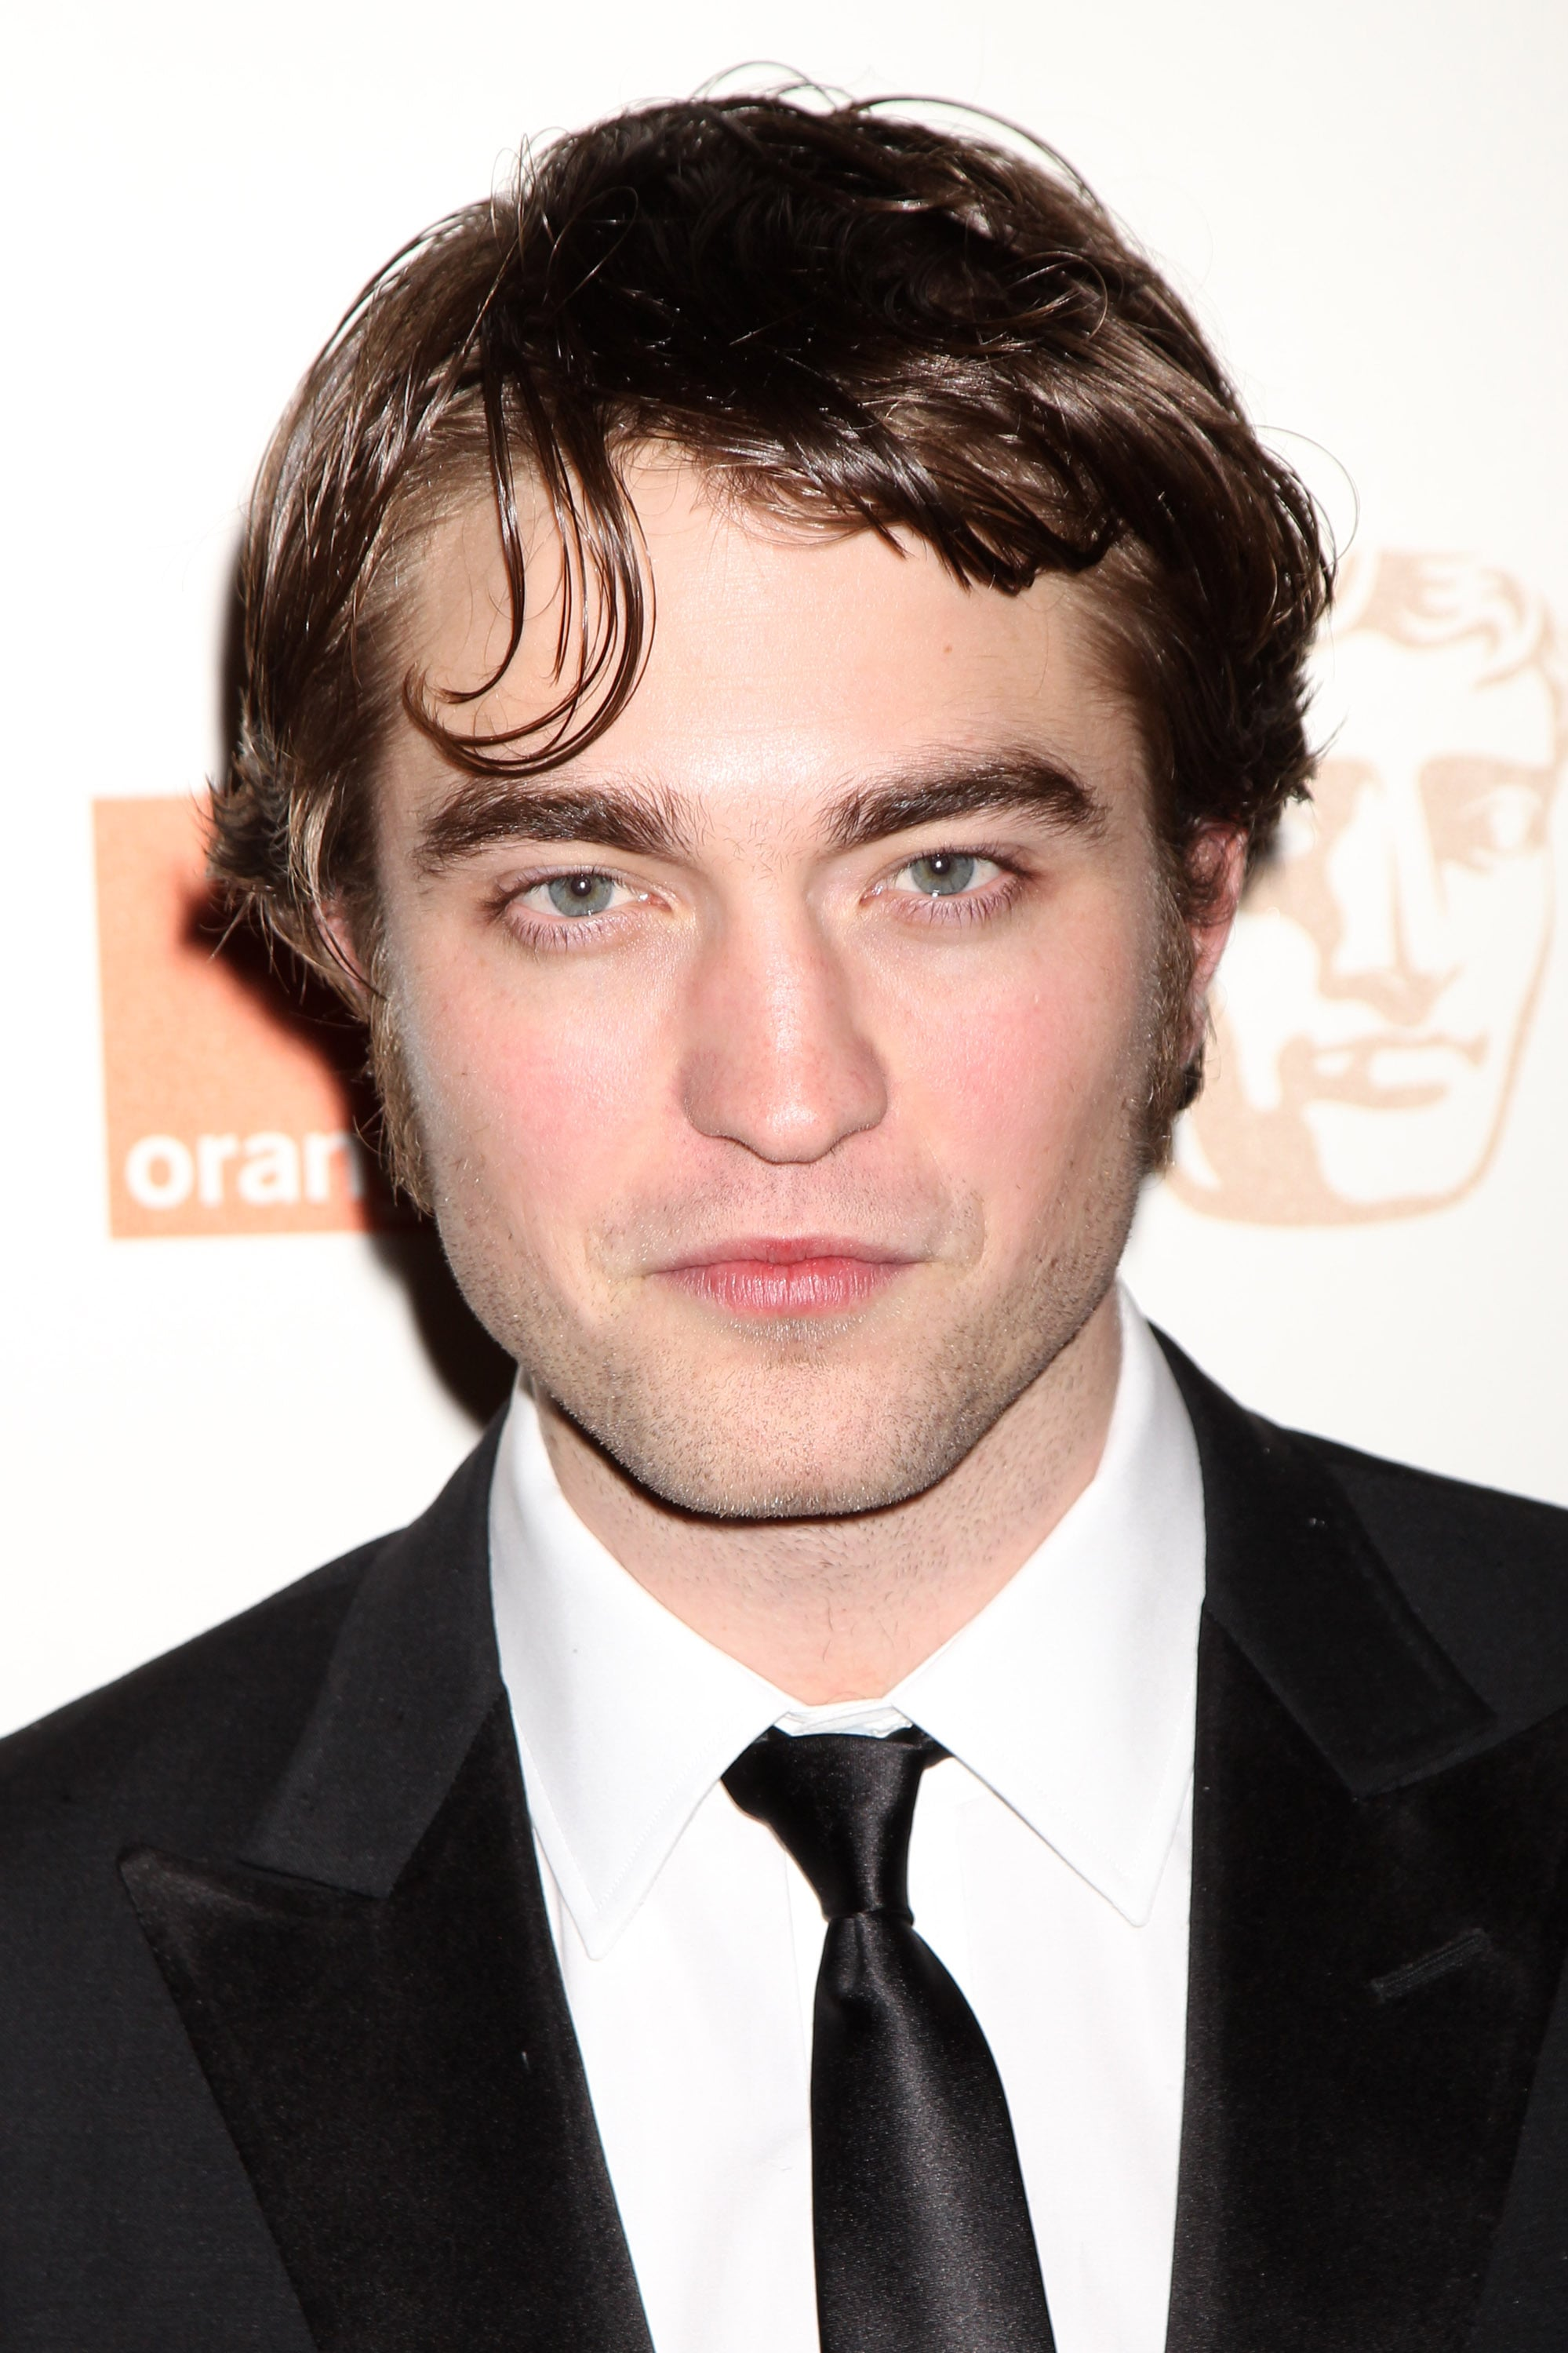 photos of robert pattinson on baftas red carpet 2010 with new hair